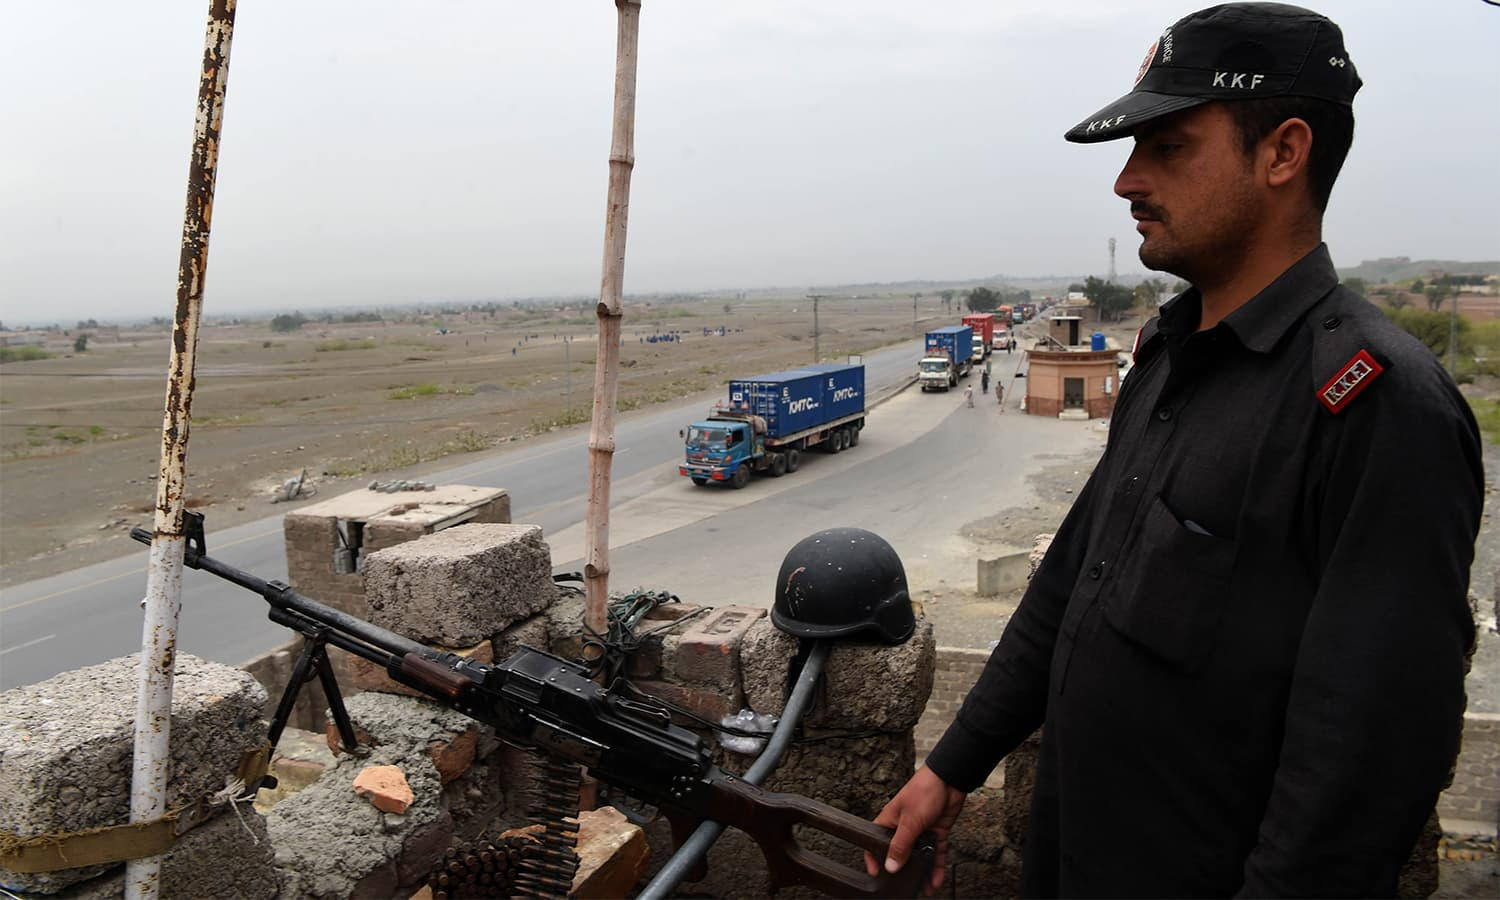 Security personnel standing guard at a checkpoint in the Jamrud town of Khyber Agency in KP.